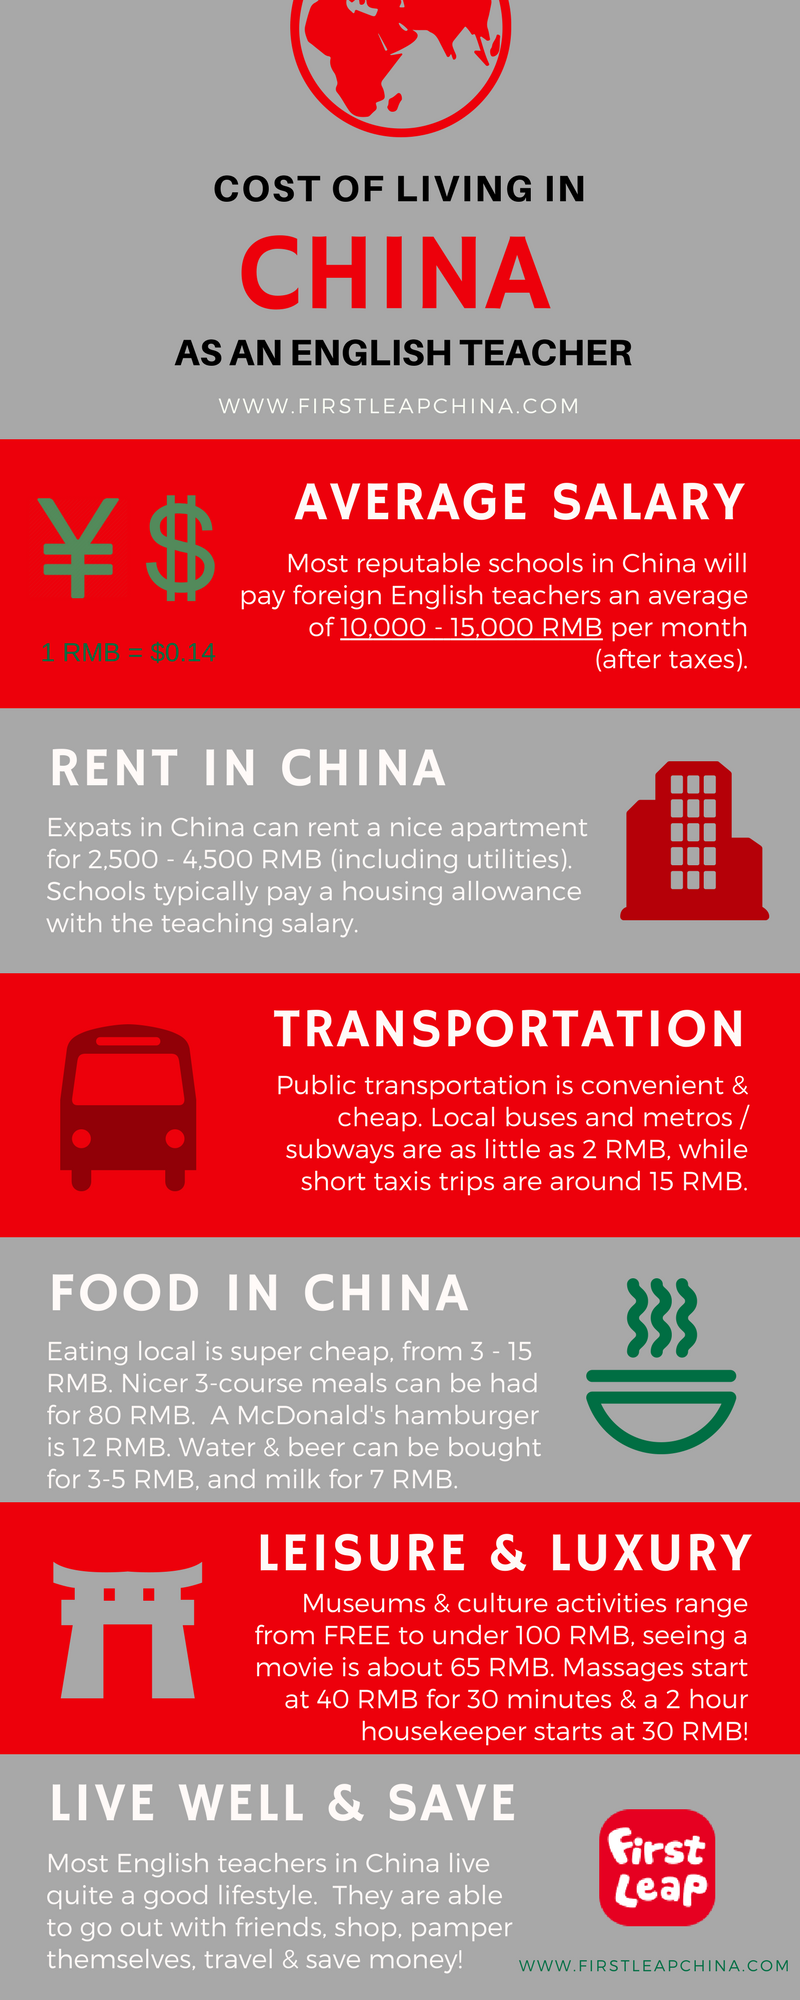 Cost of Living in China for English Teachers - First Leap China